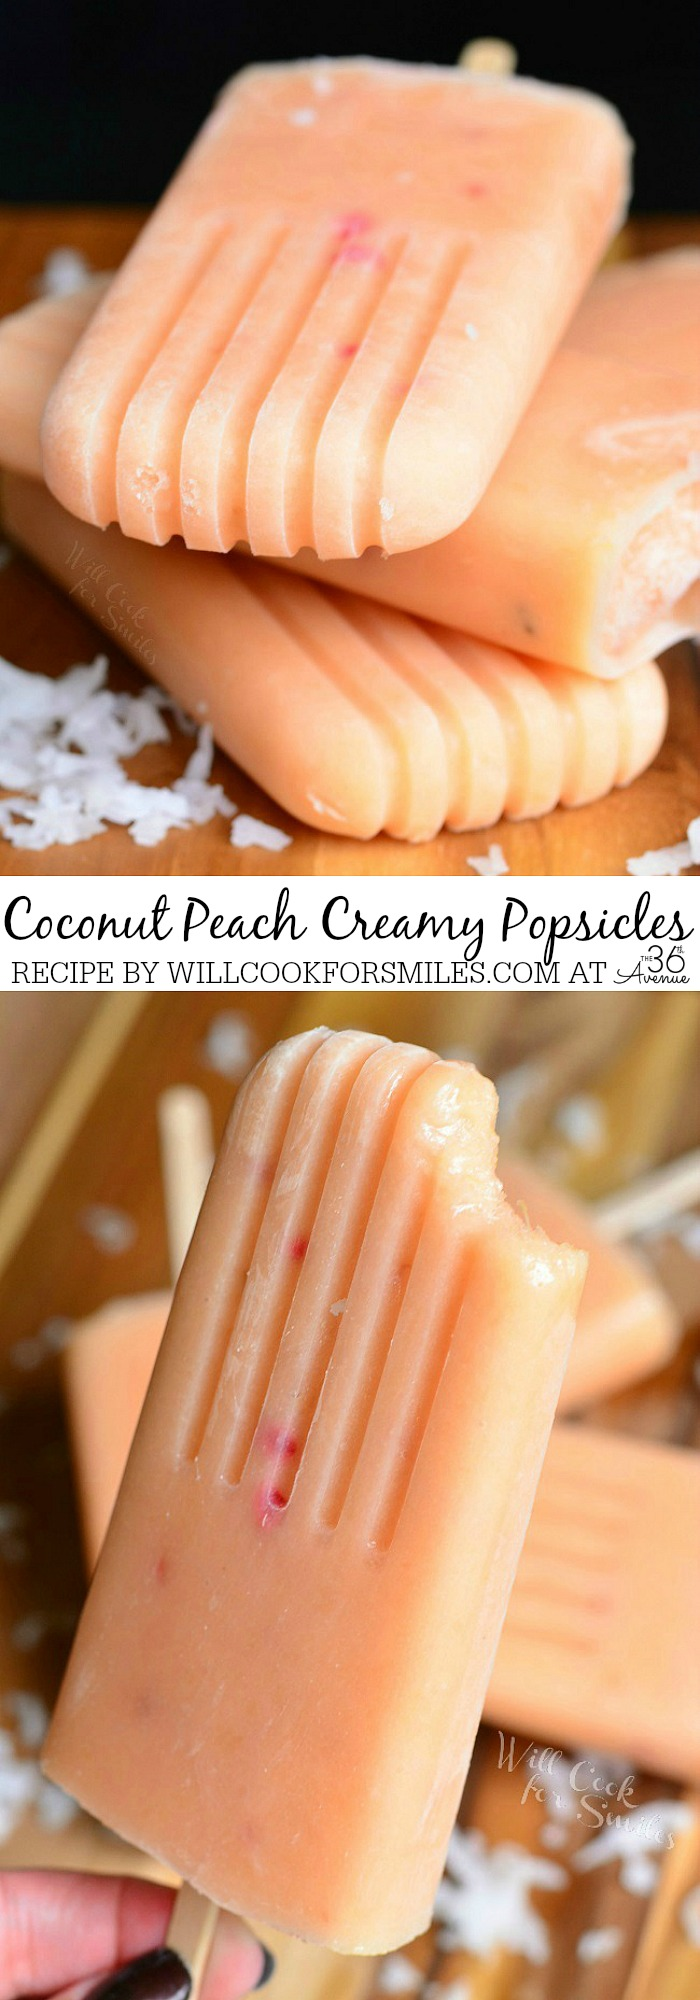 Recipes - Coconut and Peach Creamy Popsicles by willcookforsmiles.com